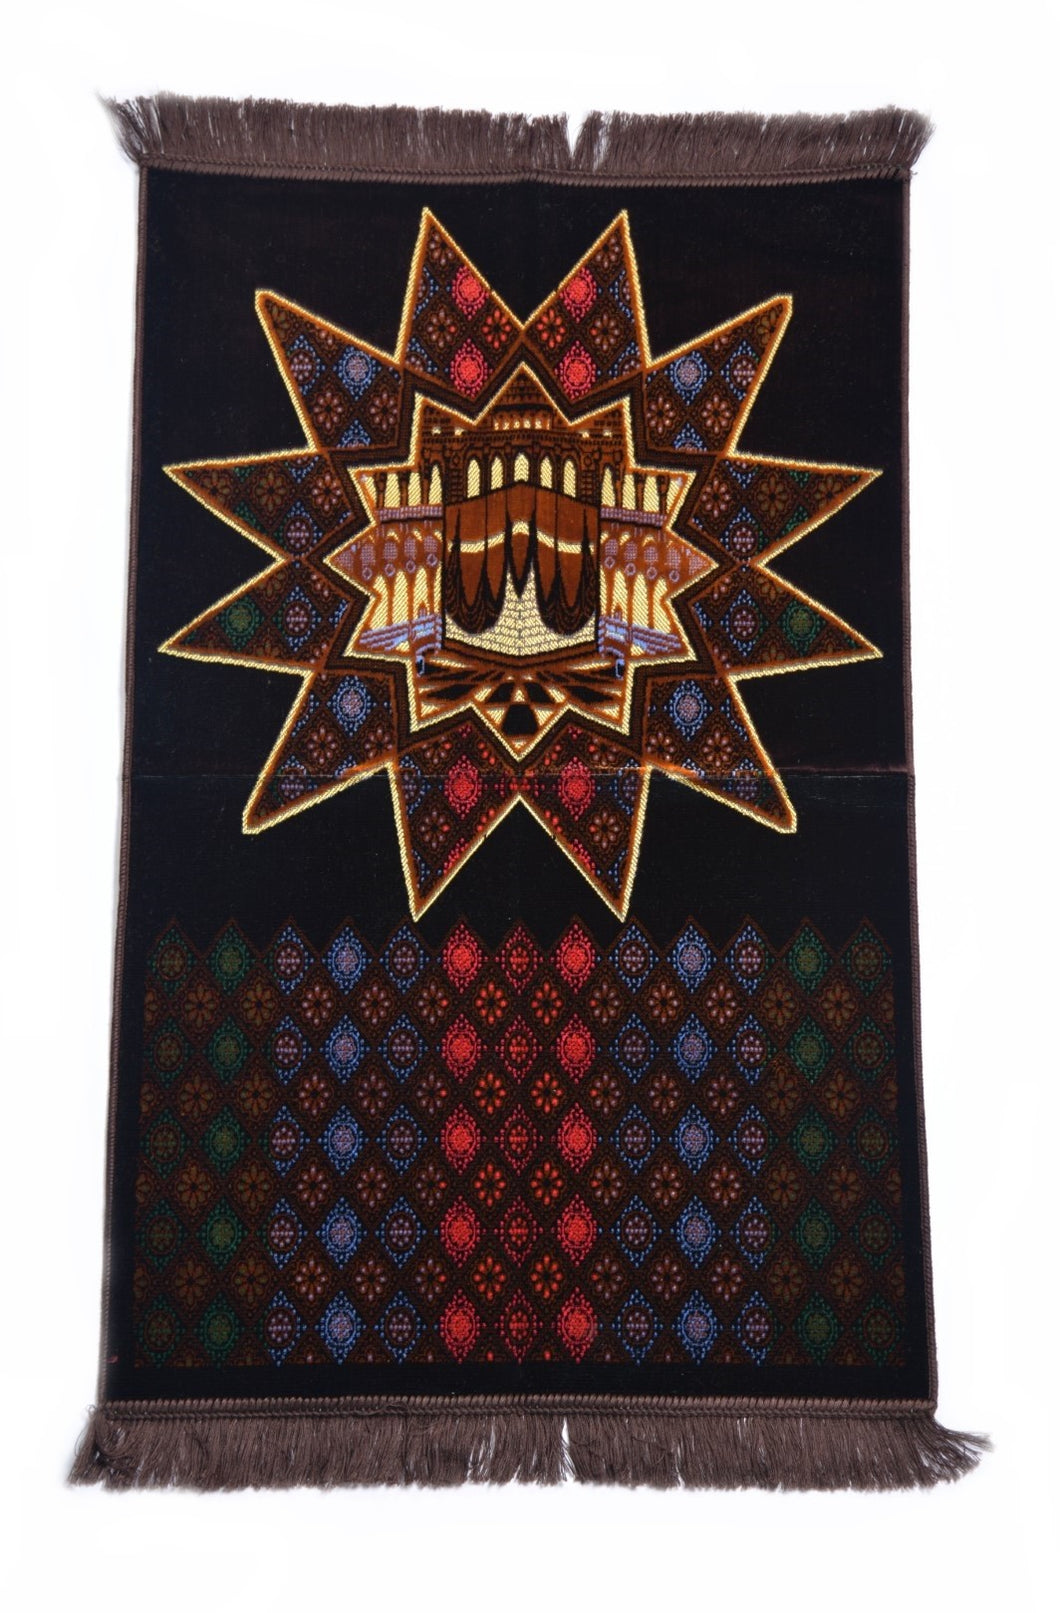 Al Arabia Muslim Prayer Rug - Made from Embossed Velvet - Features Star Kaaba Design & Fringes On Both Sides - Portable Islamic Prayer Mat - Perfect Gift for Ramadan & Special Occasions, 44 X 27